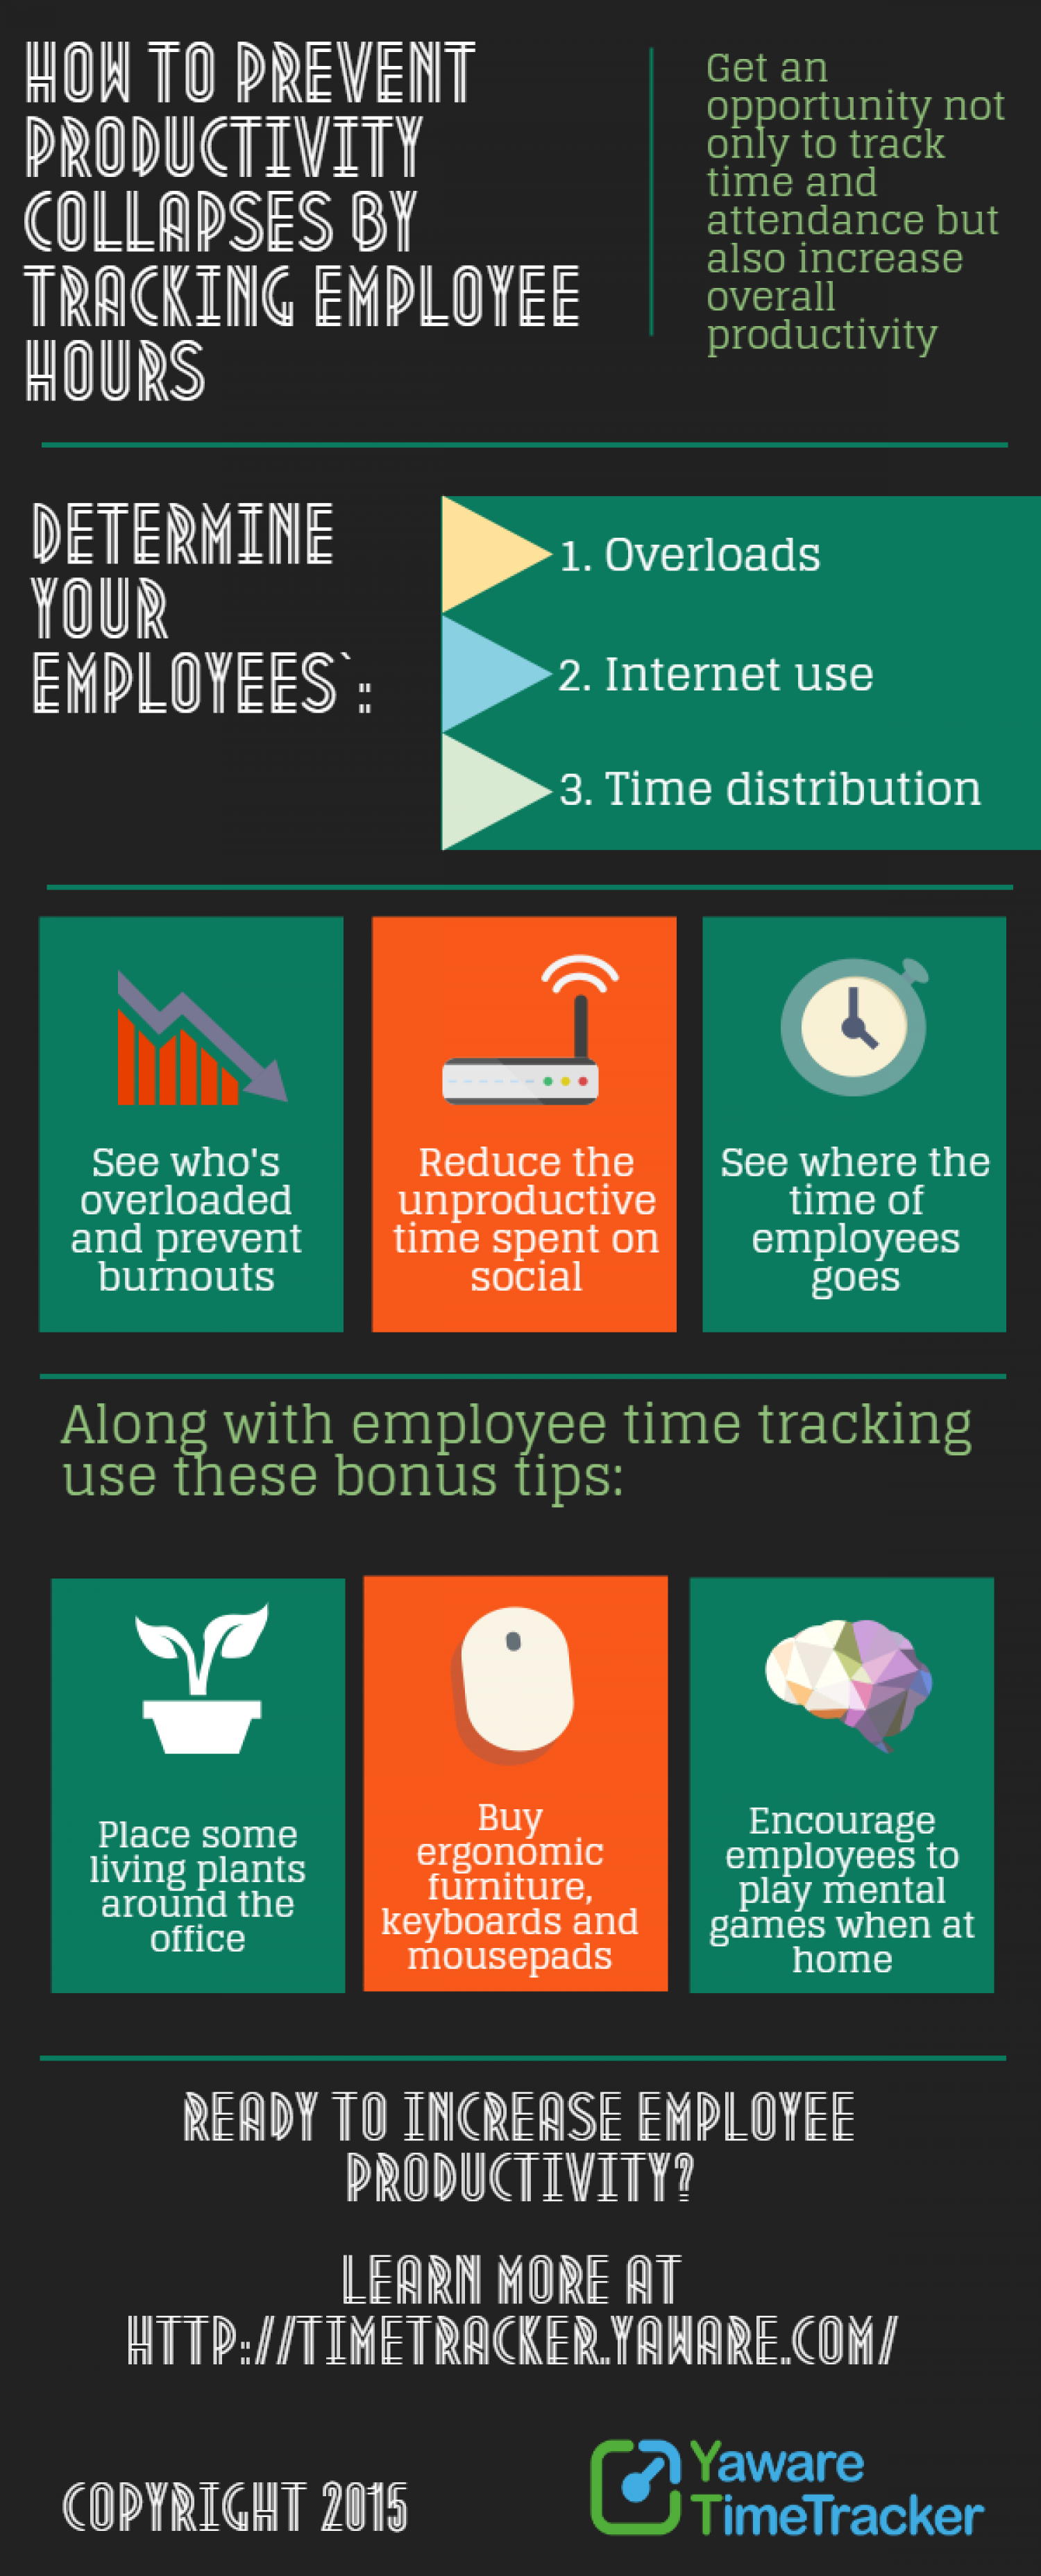 How to Prevent Productivity Collapses by Tracking Employee Hours Infographic